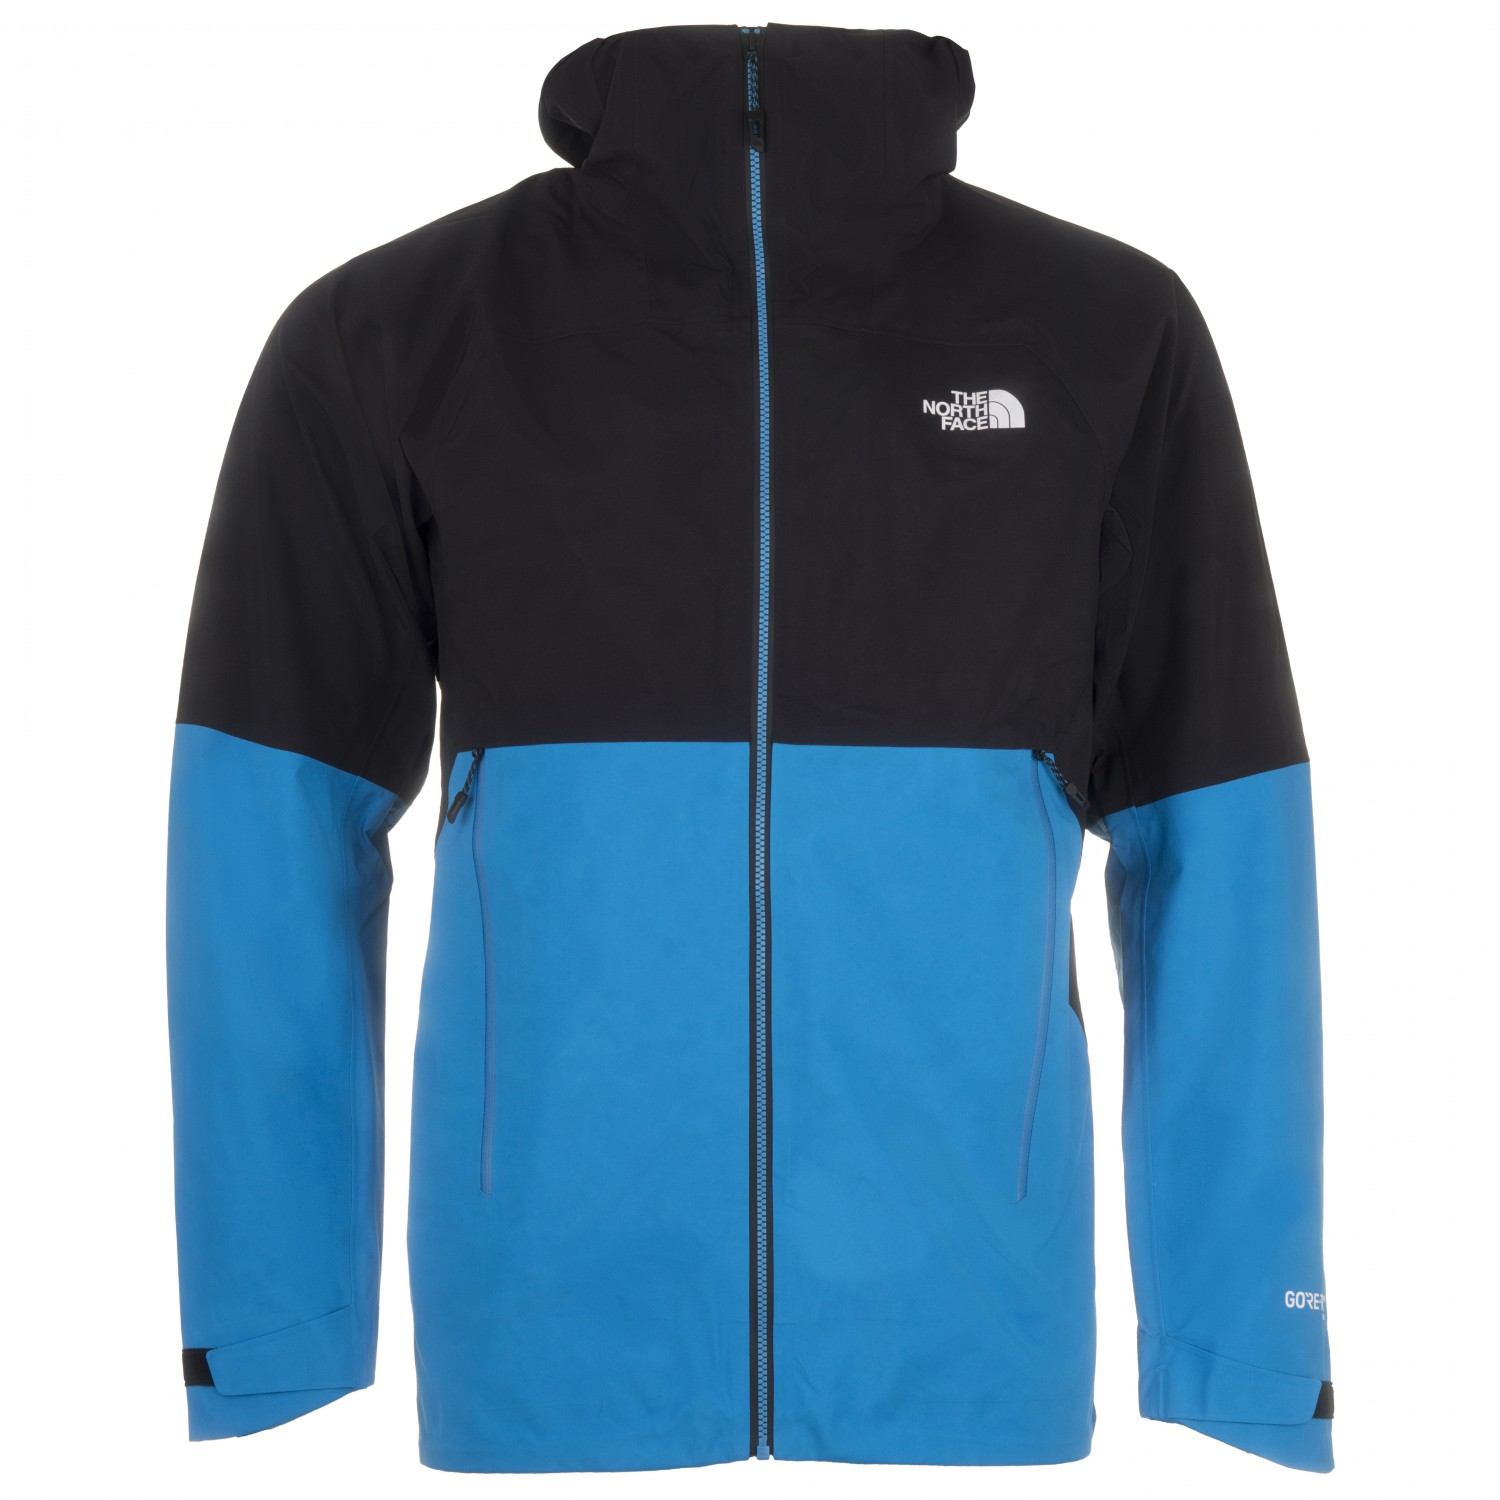 3b21fce30 The North Face - Impendor Shell Jacket - Waterproof jacket